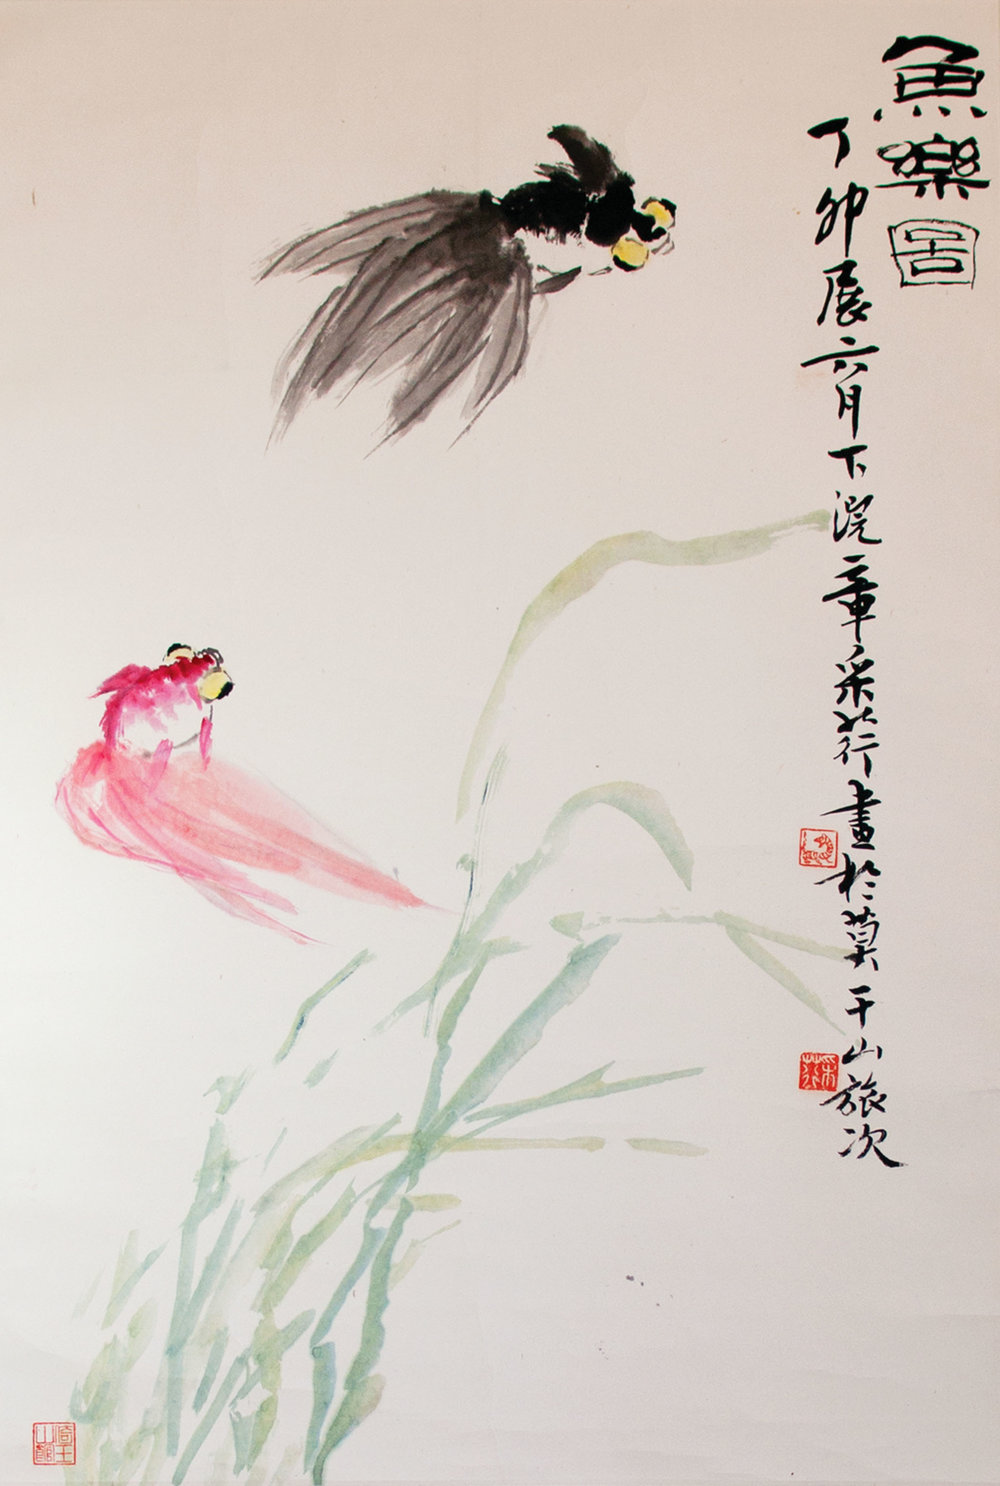 Though the form of the goldfish in Light-hearted isn't realistic like a Western classical painting, what is true is their spirit and personality — the aim of classical Chinese painting.